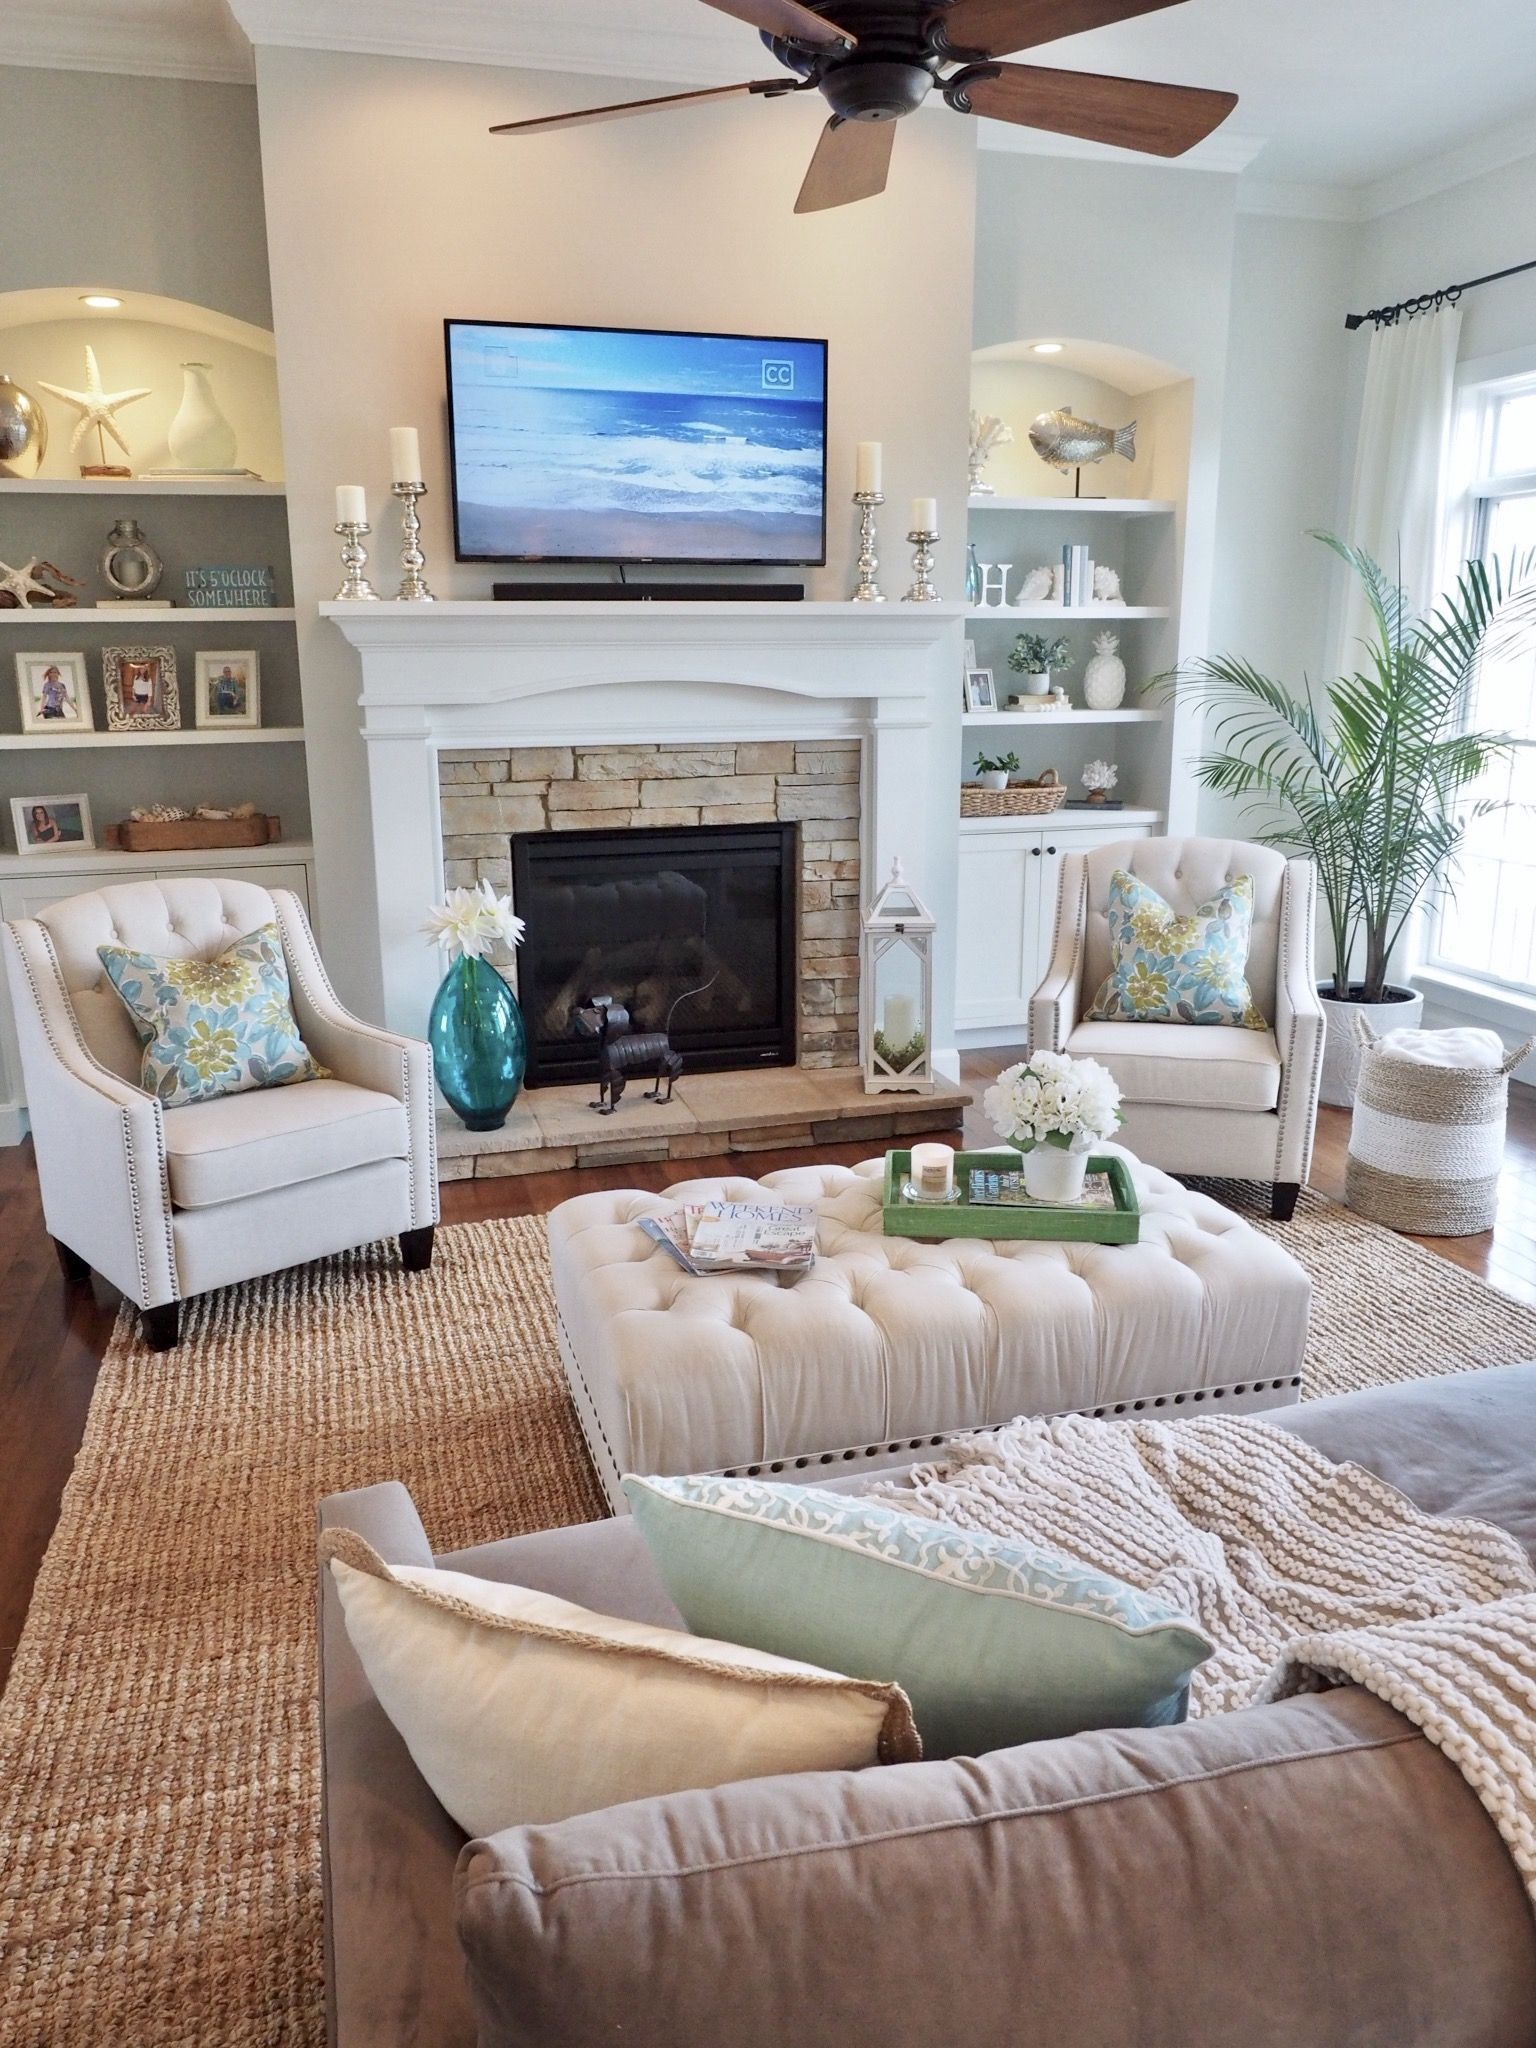 Living Room Family Room Decor Home Decor Fireplace Design But Ins Sh Family Room Decorating Coastal Decorating Living Room Living Room Remodel